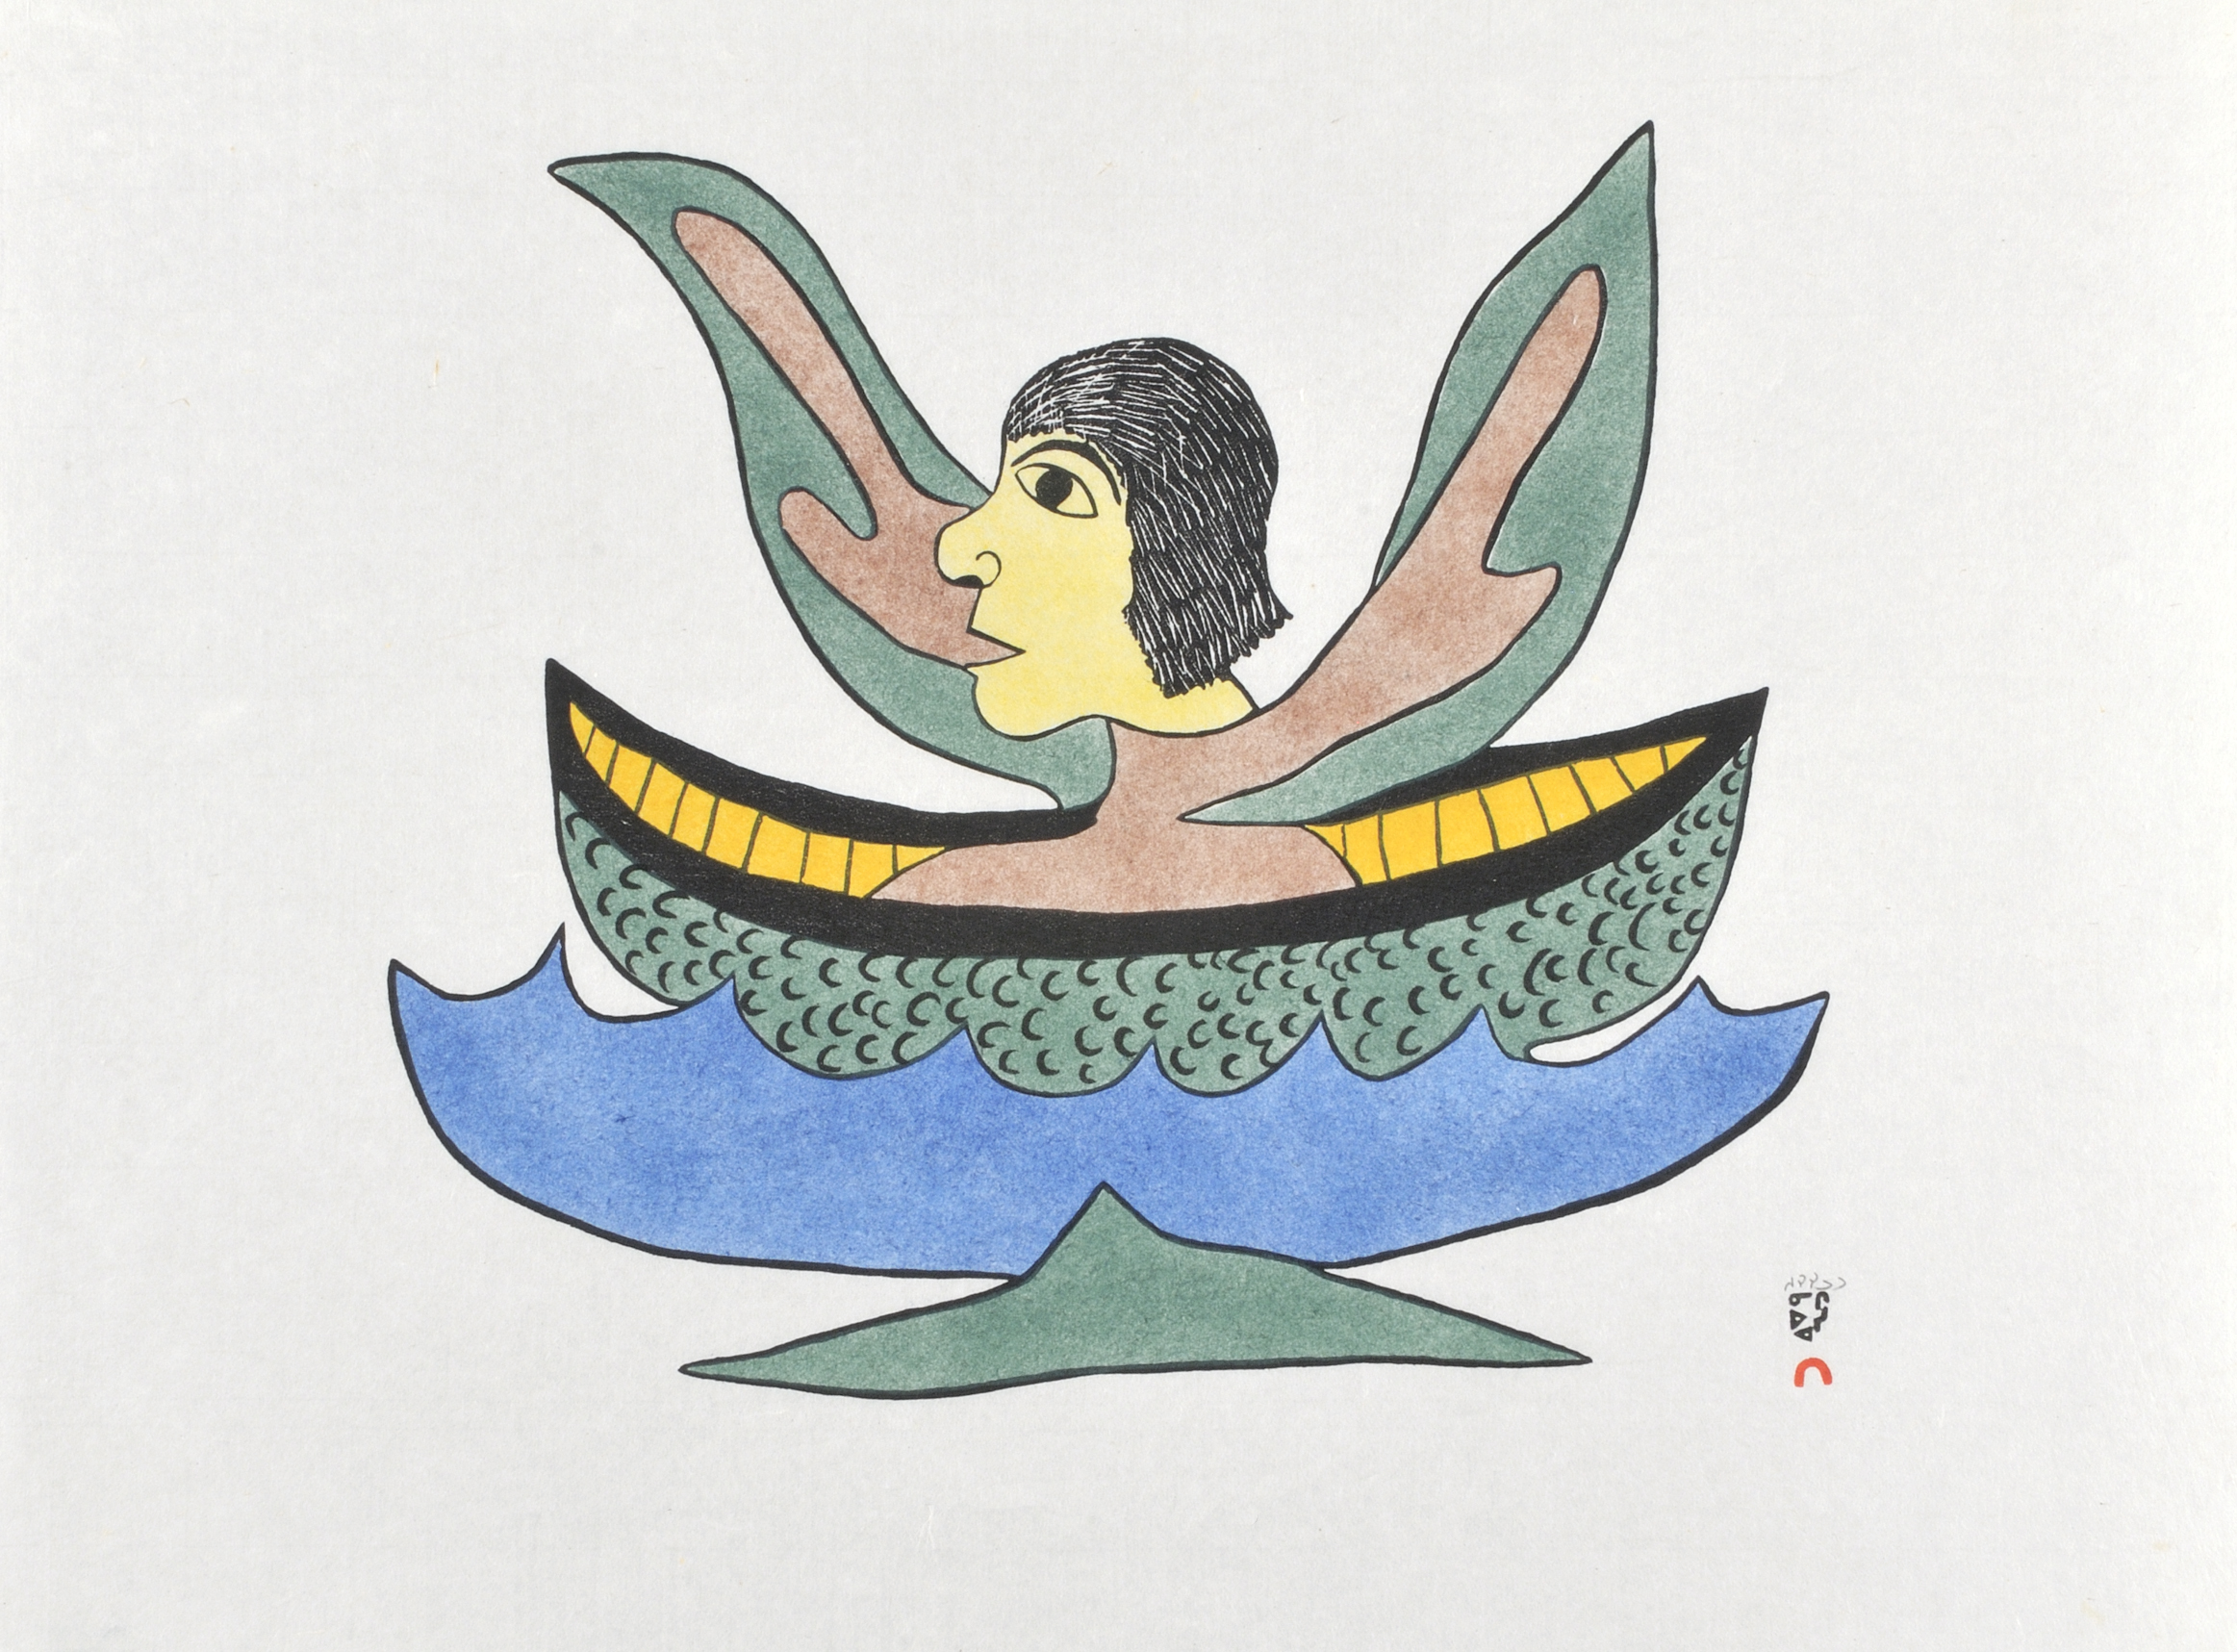 Soroseelutu Ashoona  ALONE ON THE OCEAN Stonecut & Stencil 1979 46.5 x 62 cm $200.00 CDN Released in the 1979 collection Dorset ID#: 79-57